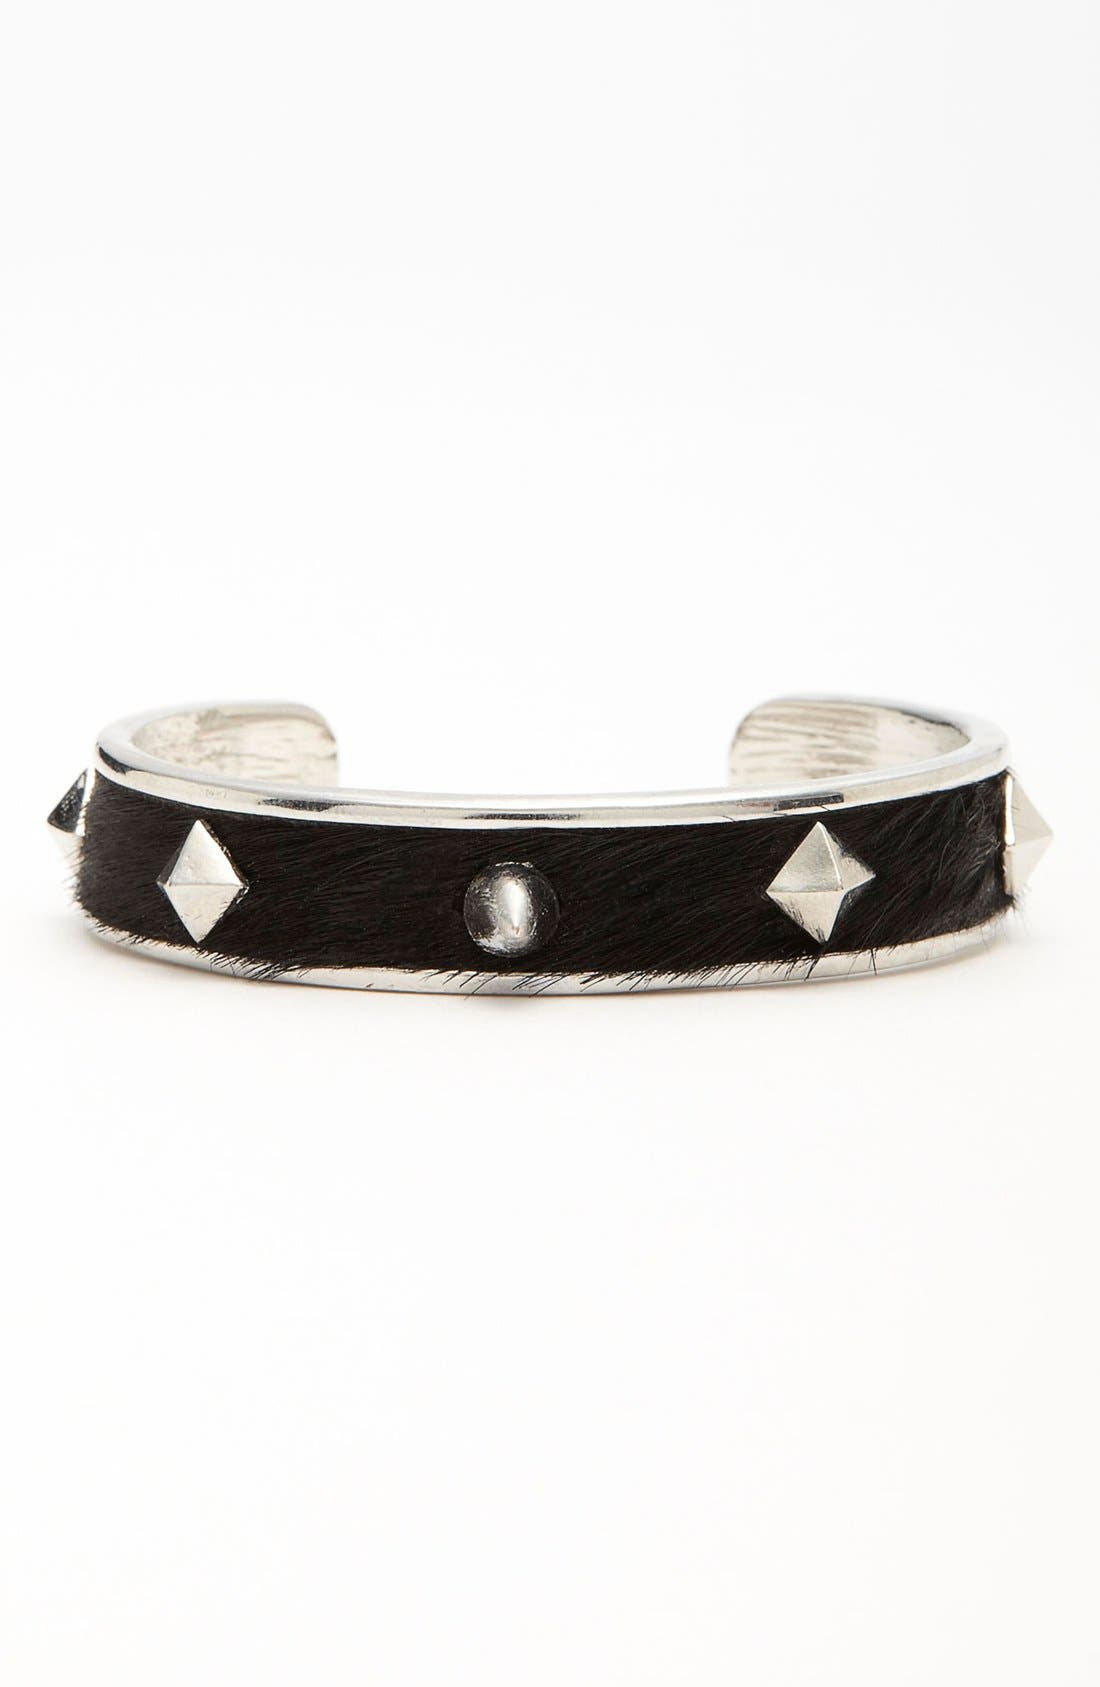 Alternate Image 1 Selected - Carbon Copy Calf Hair Spike Cuff